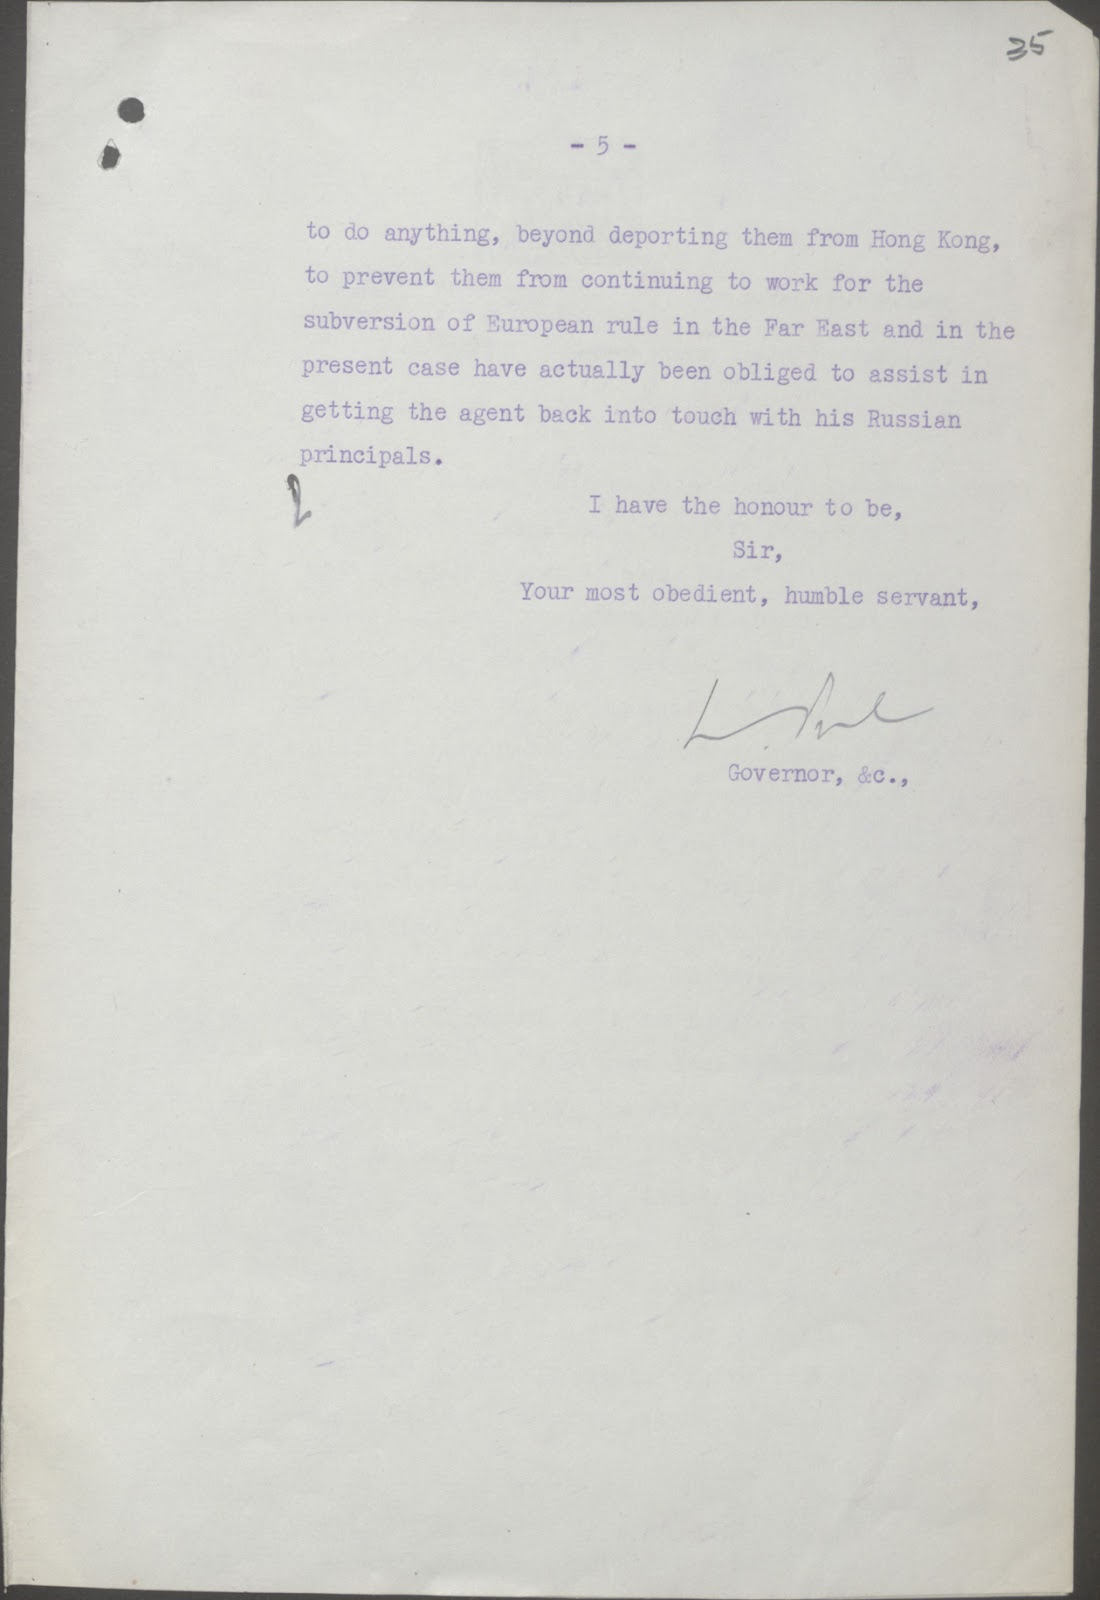 Peel 's letter to Cunliffe-Lister (5).jpg